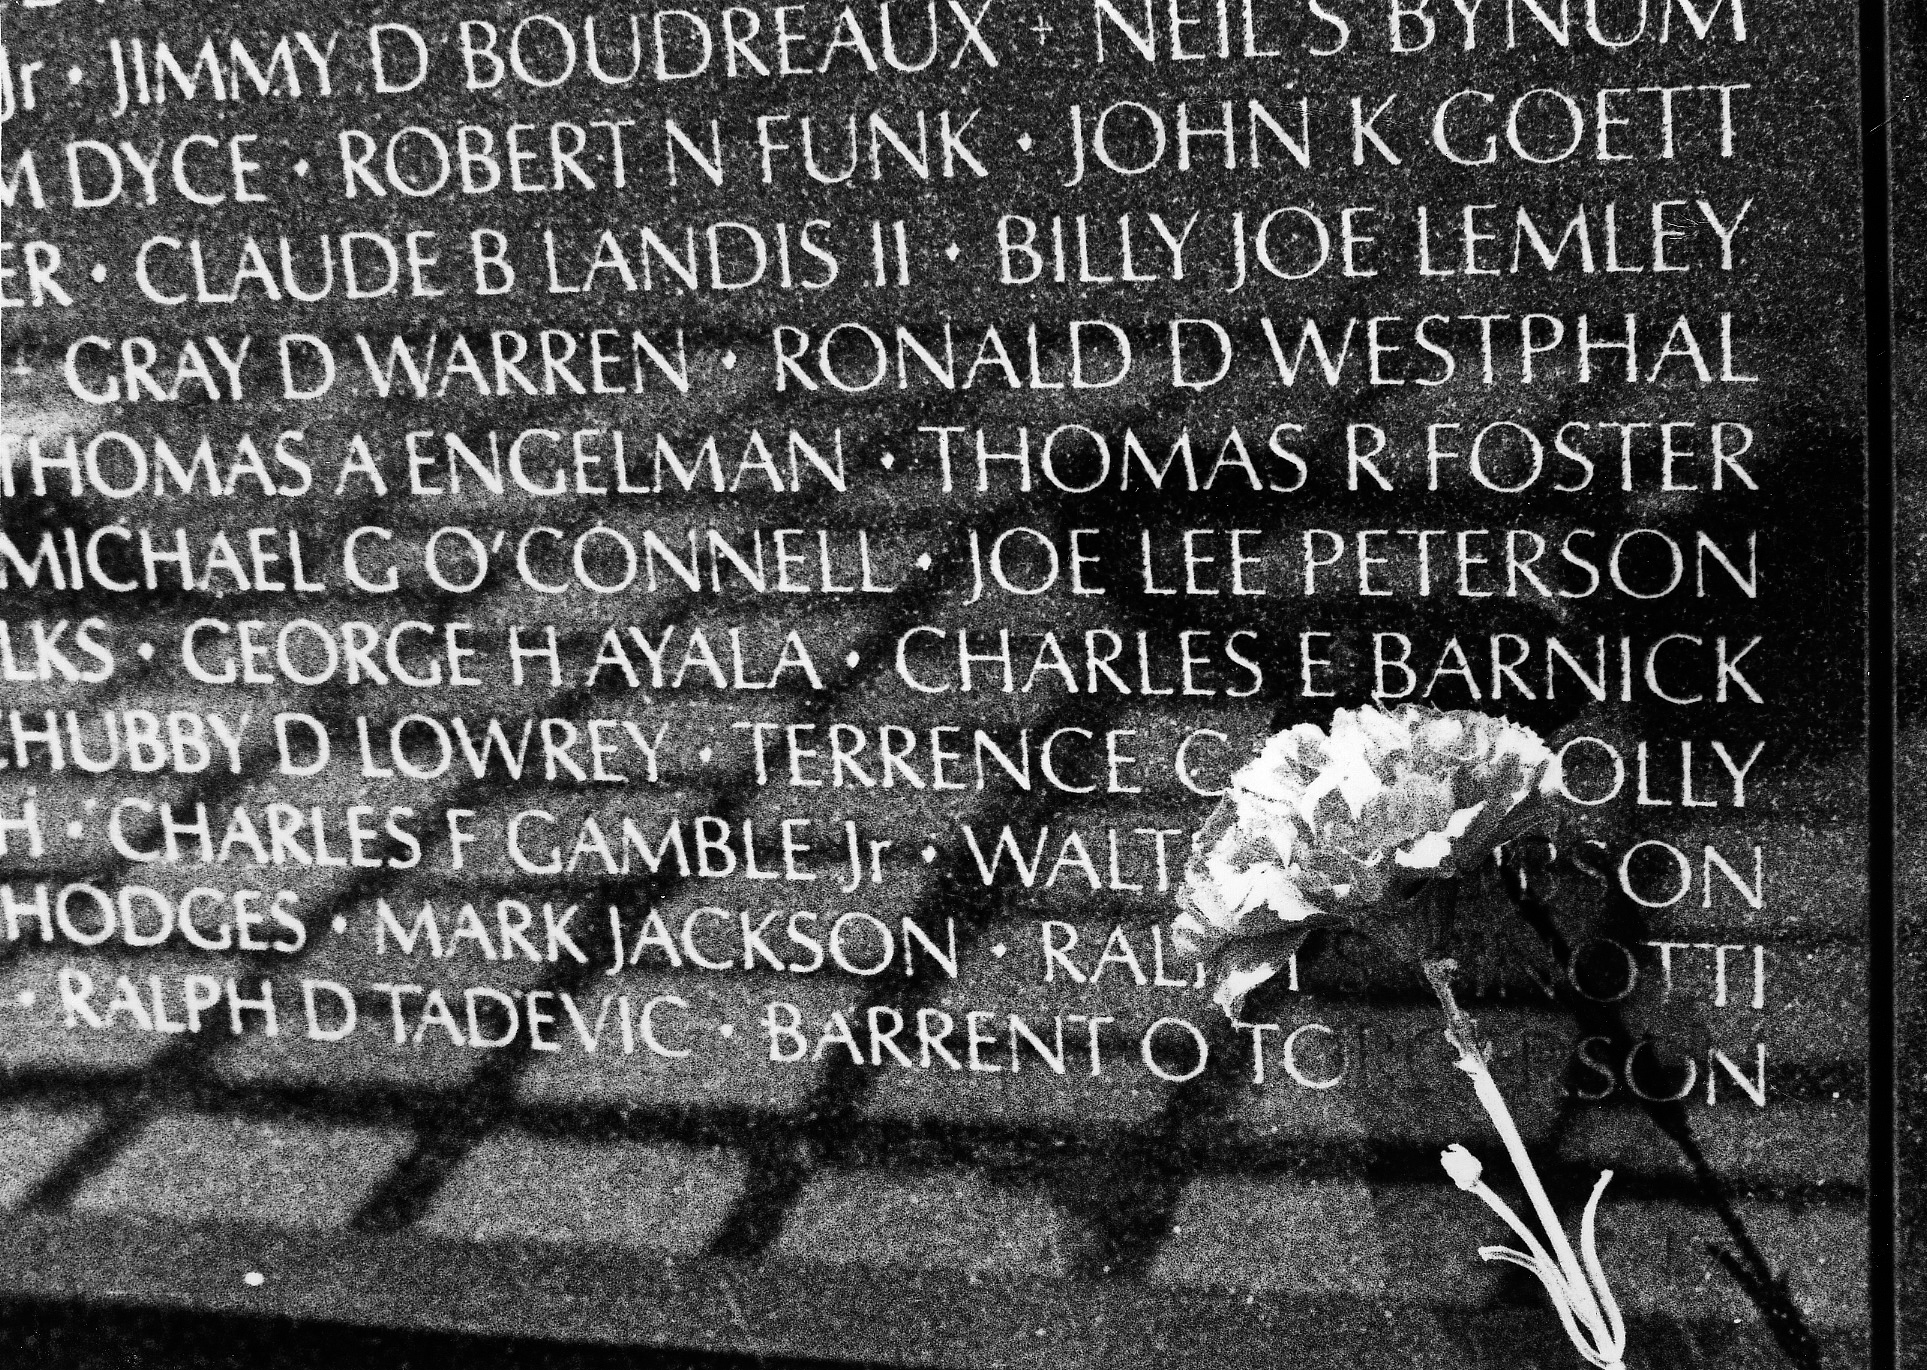 Martin Burns - Vietnam War Memorial: Names